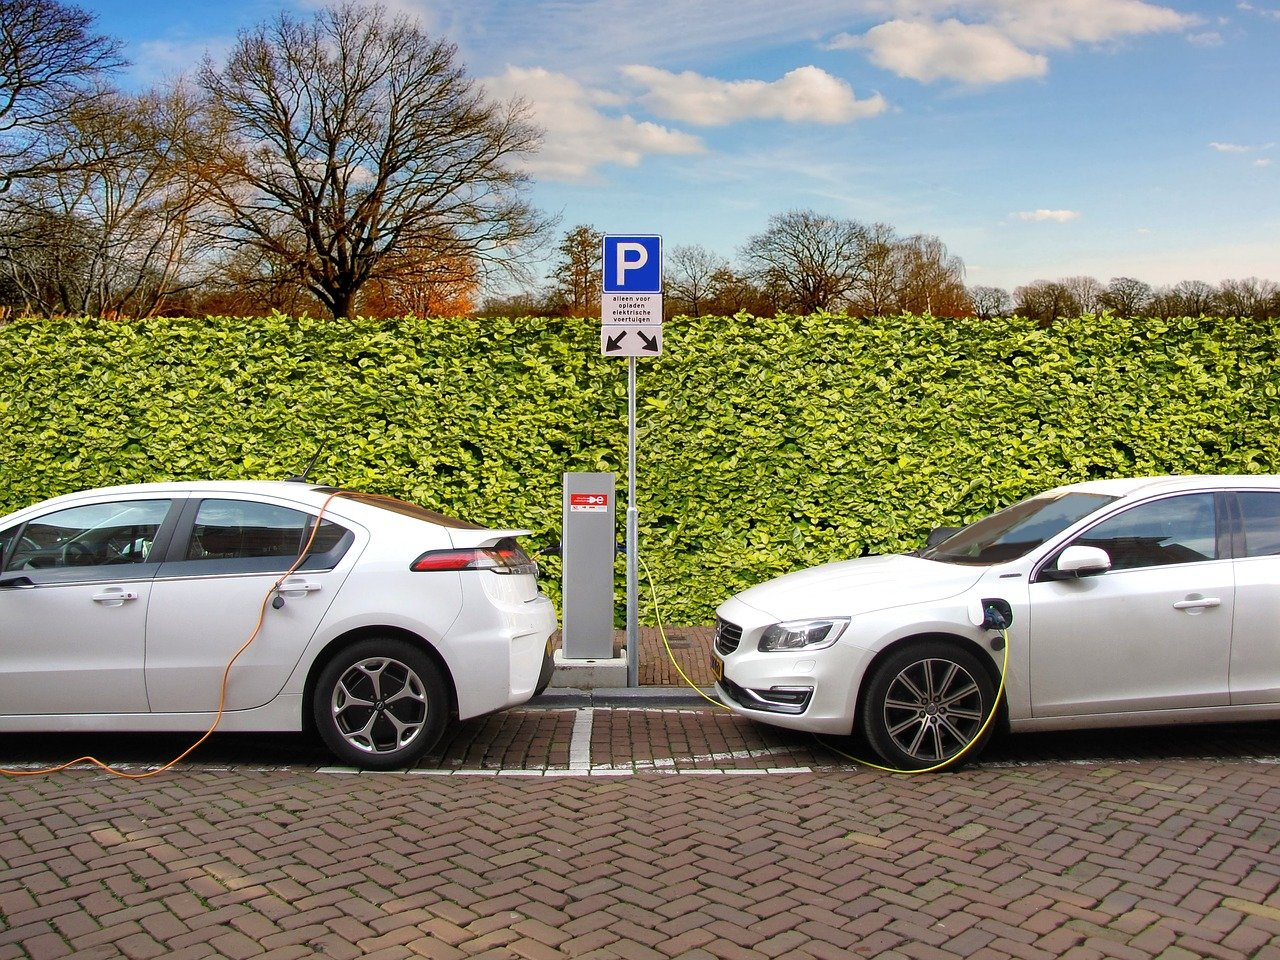 Two Parked White Electric Vehicles Getting Charged Alongside a Field